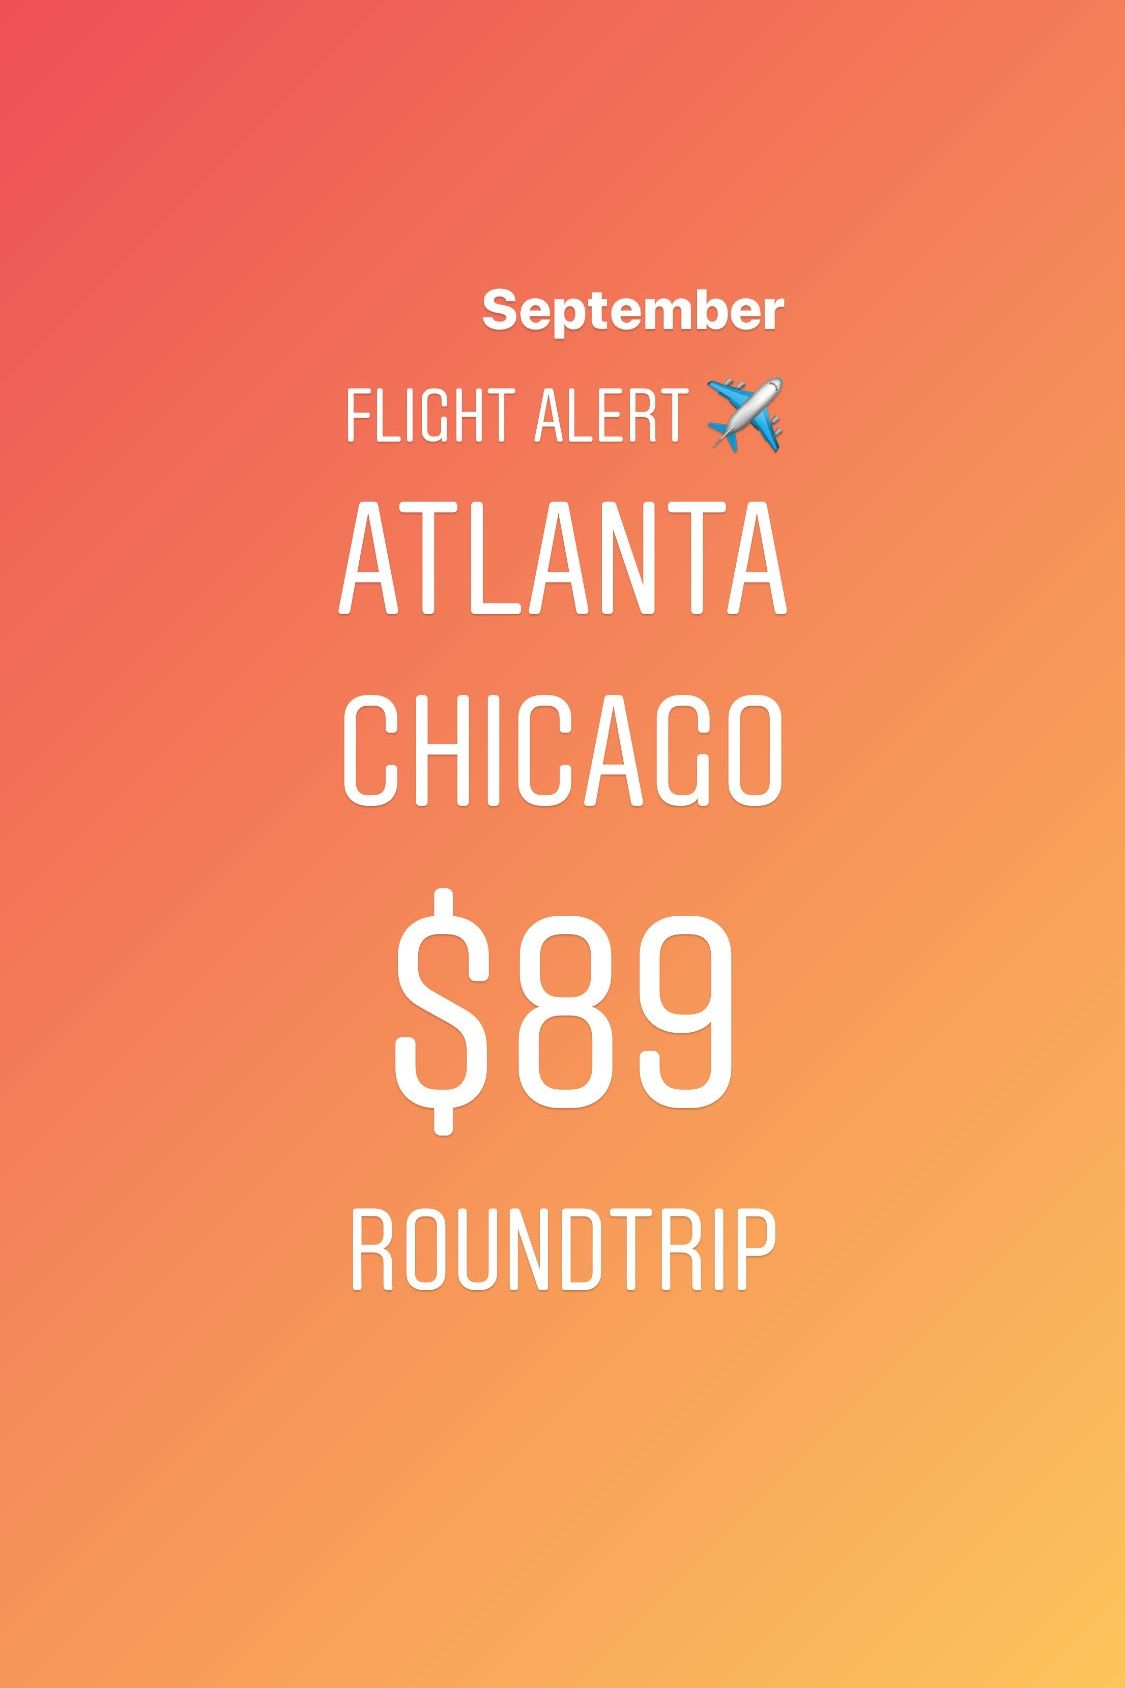 #Airfaredeals are time-sensitive. Spending at least an hour everyday monitoring flights for different dates is time-consuming. If you want to get a great price, you need to act fast and sign up for Flight Alerts to get the best airfare deals from your airport delivered to your phone. Get notified first about the best deals on flight tickets with Flight Alerts by Kobza Travel. Check the link in bio to start your #FREEtrial today. #flightalert #flightdeals #cheapflights#atlanta #chicago #roundtrip